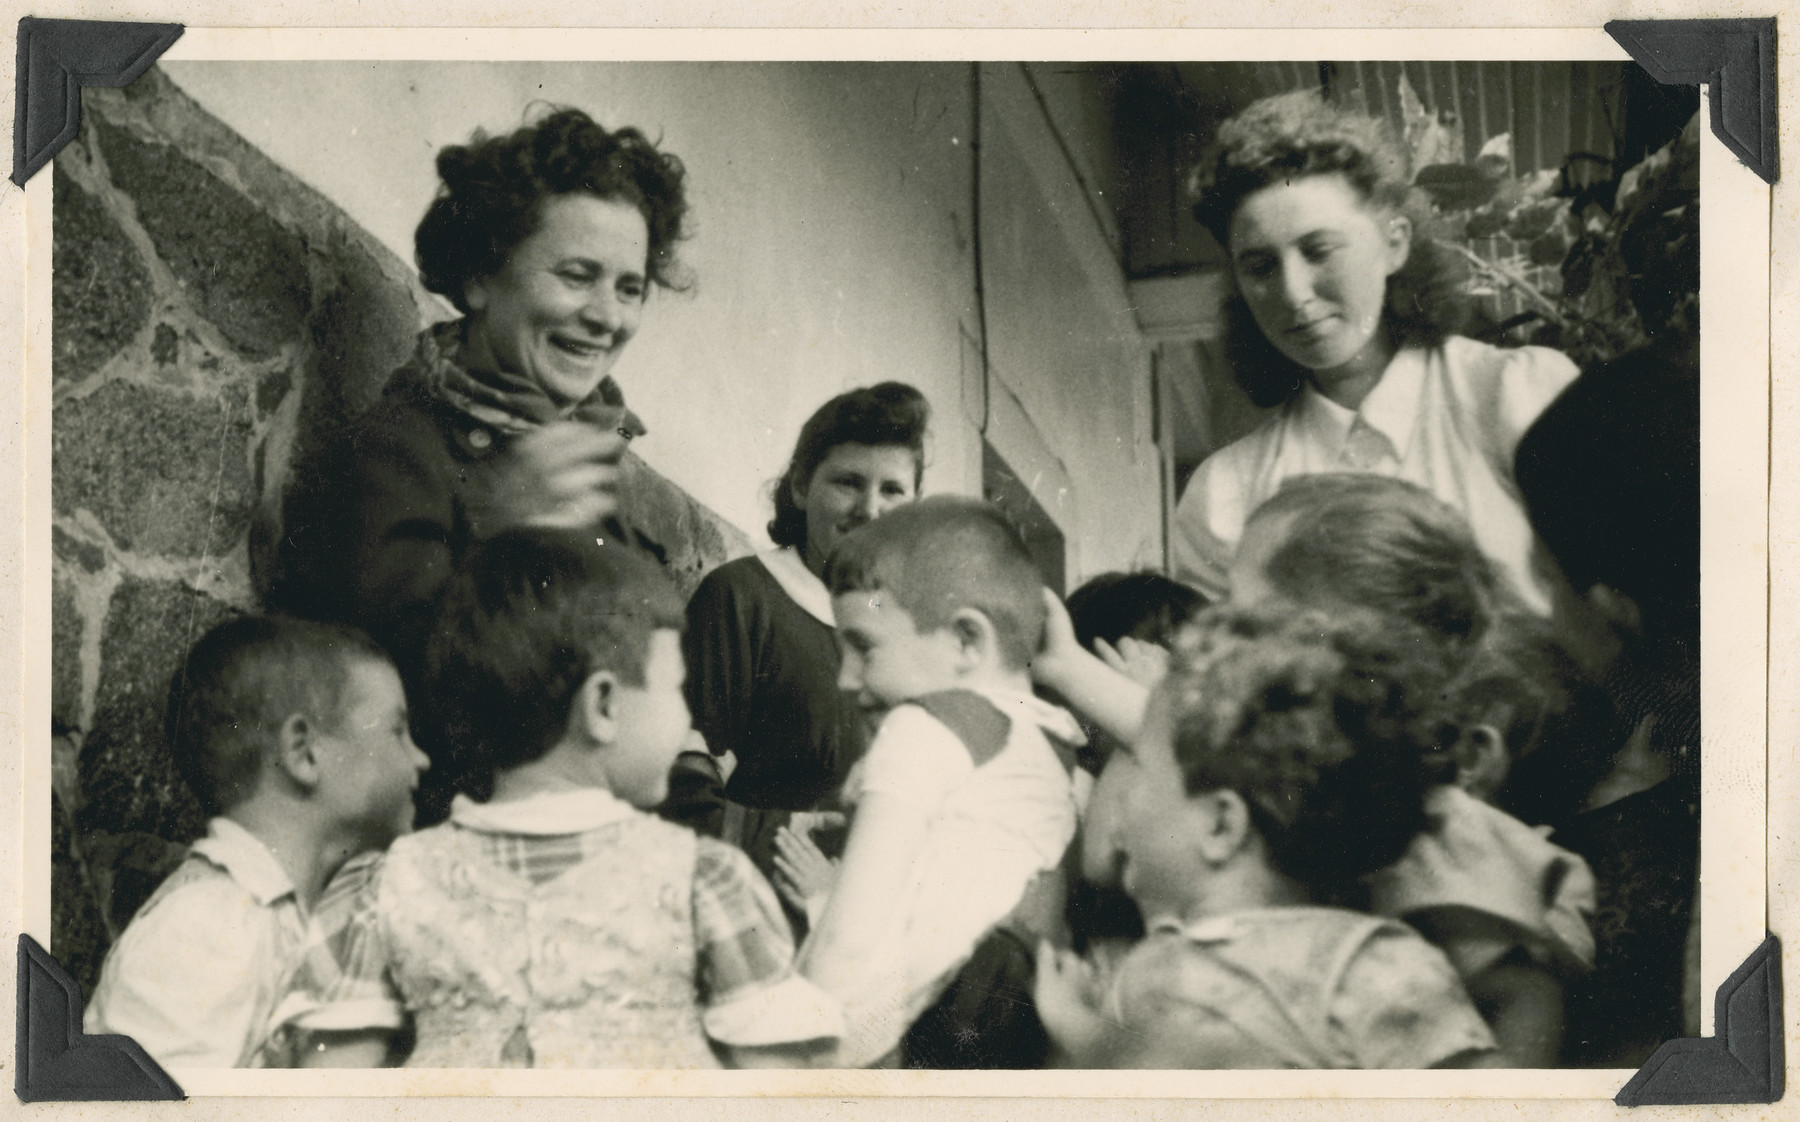 """Women and children in the Lindenfels school near Frankfurt.  The original caption reads: """"Lindenfels school.  In a small village in the beautiful Bergstrasse district.""""  Anda Pinkerfeld, a poetess from Palestine, is standing on the left."""